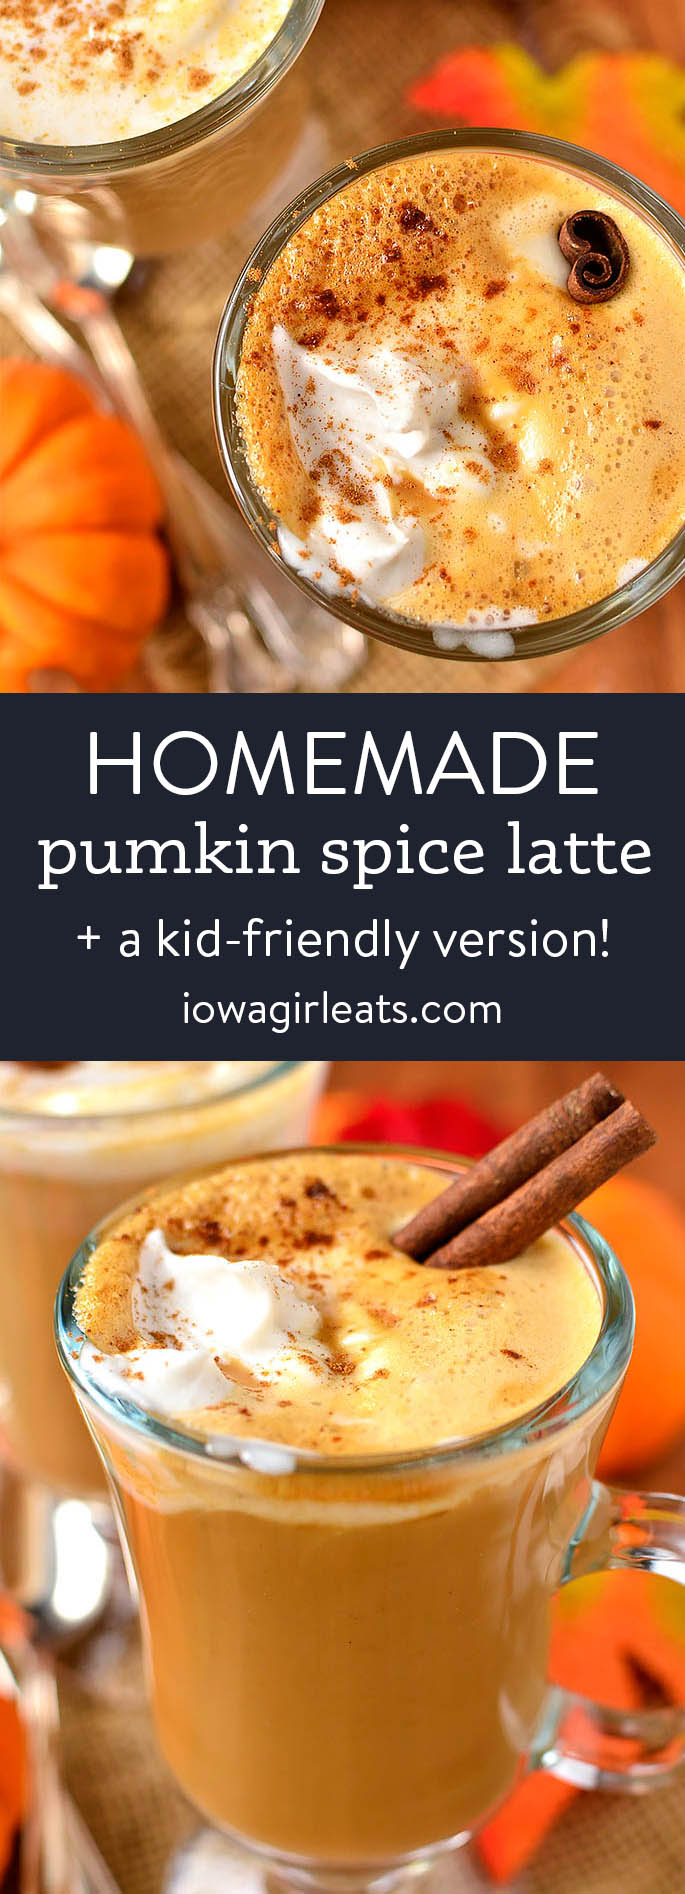 photo collage of homemade pumpkin spice latte